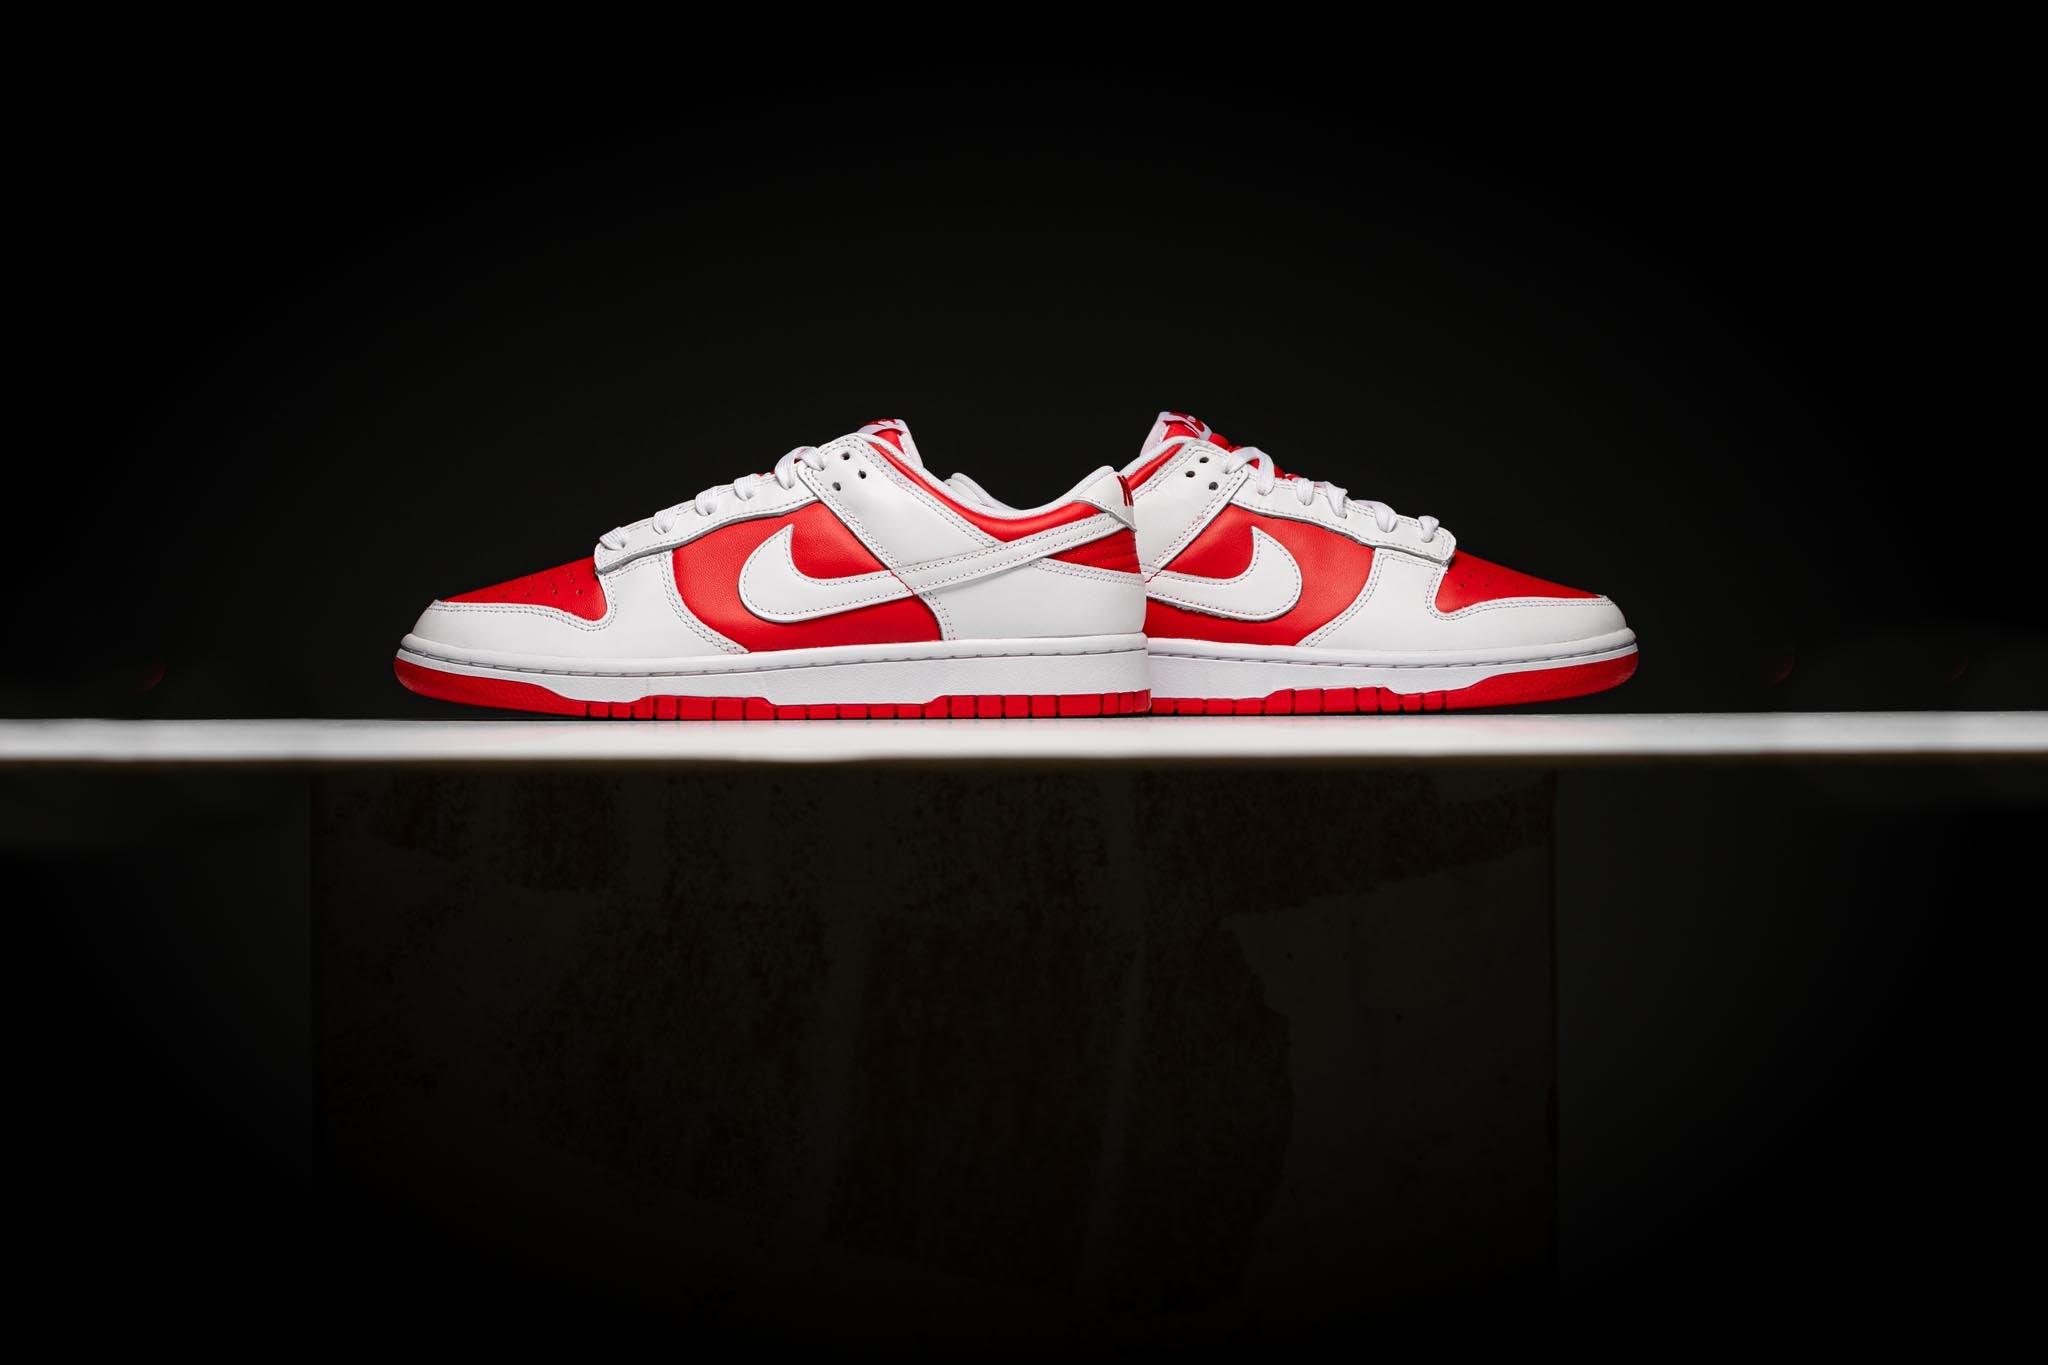 Nike Dunk Low 'Championship Red' - 1